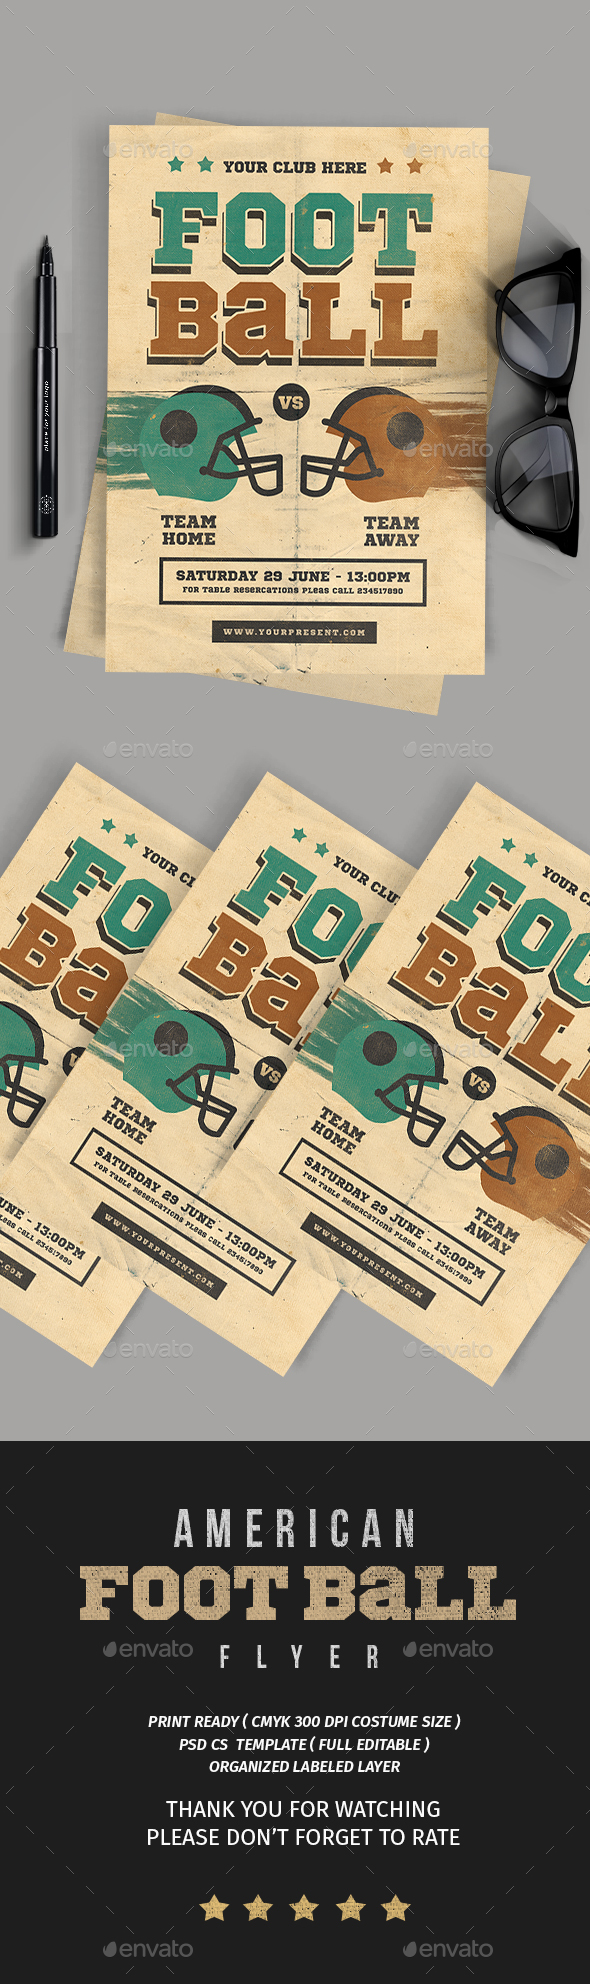 American football Flyer - Flyers Print Templates